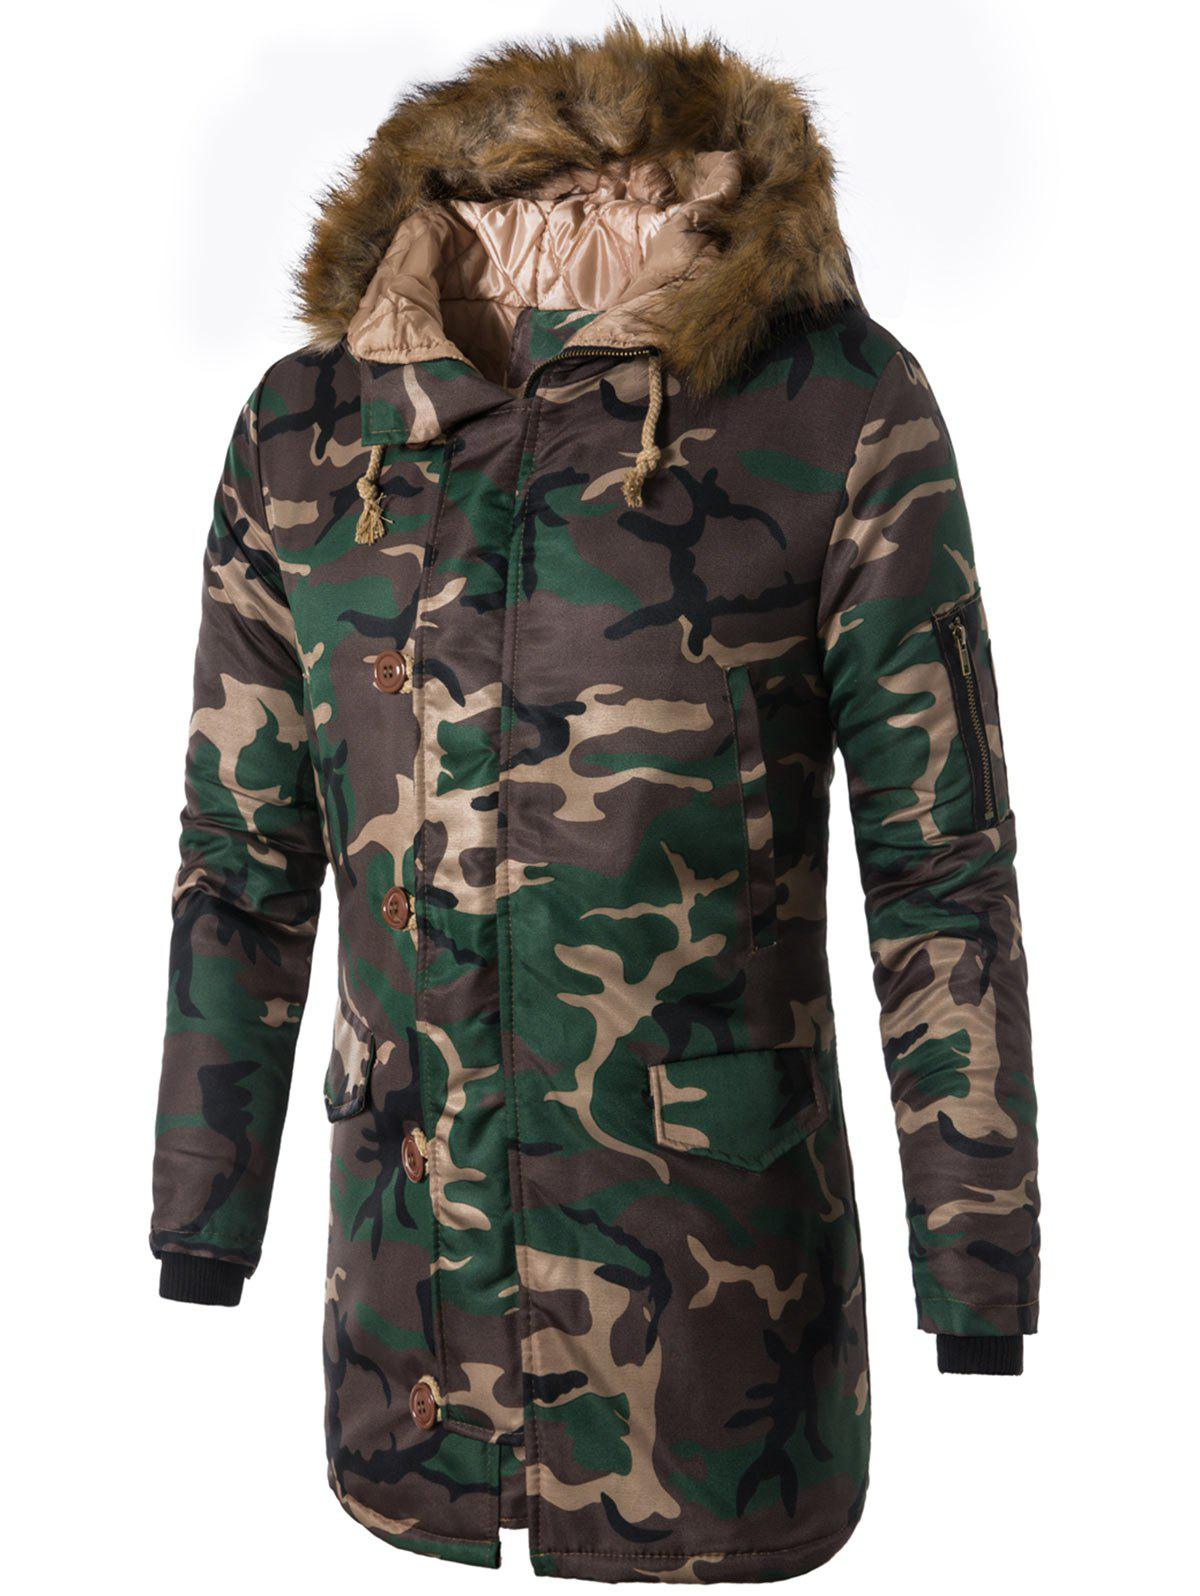 Image of Zip Up Camo Faux Fur Hooded Coat